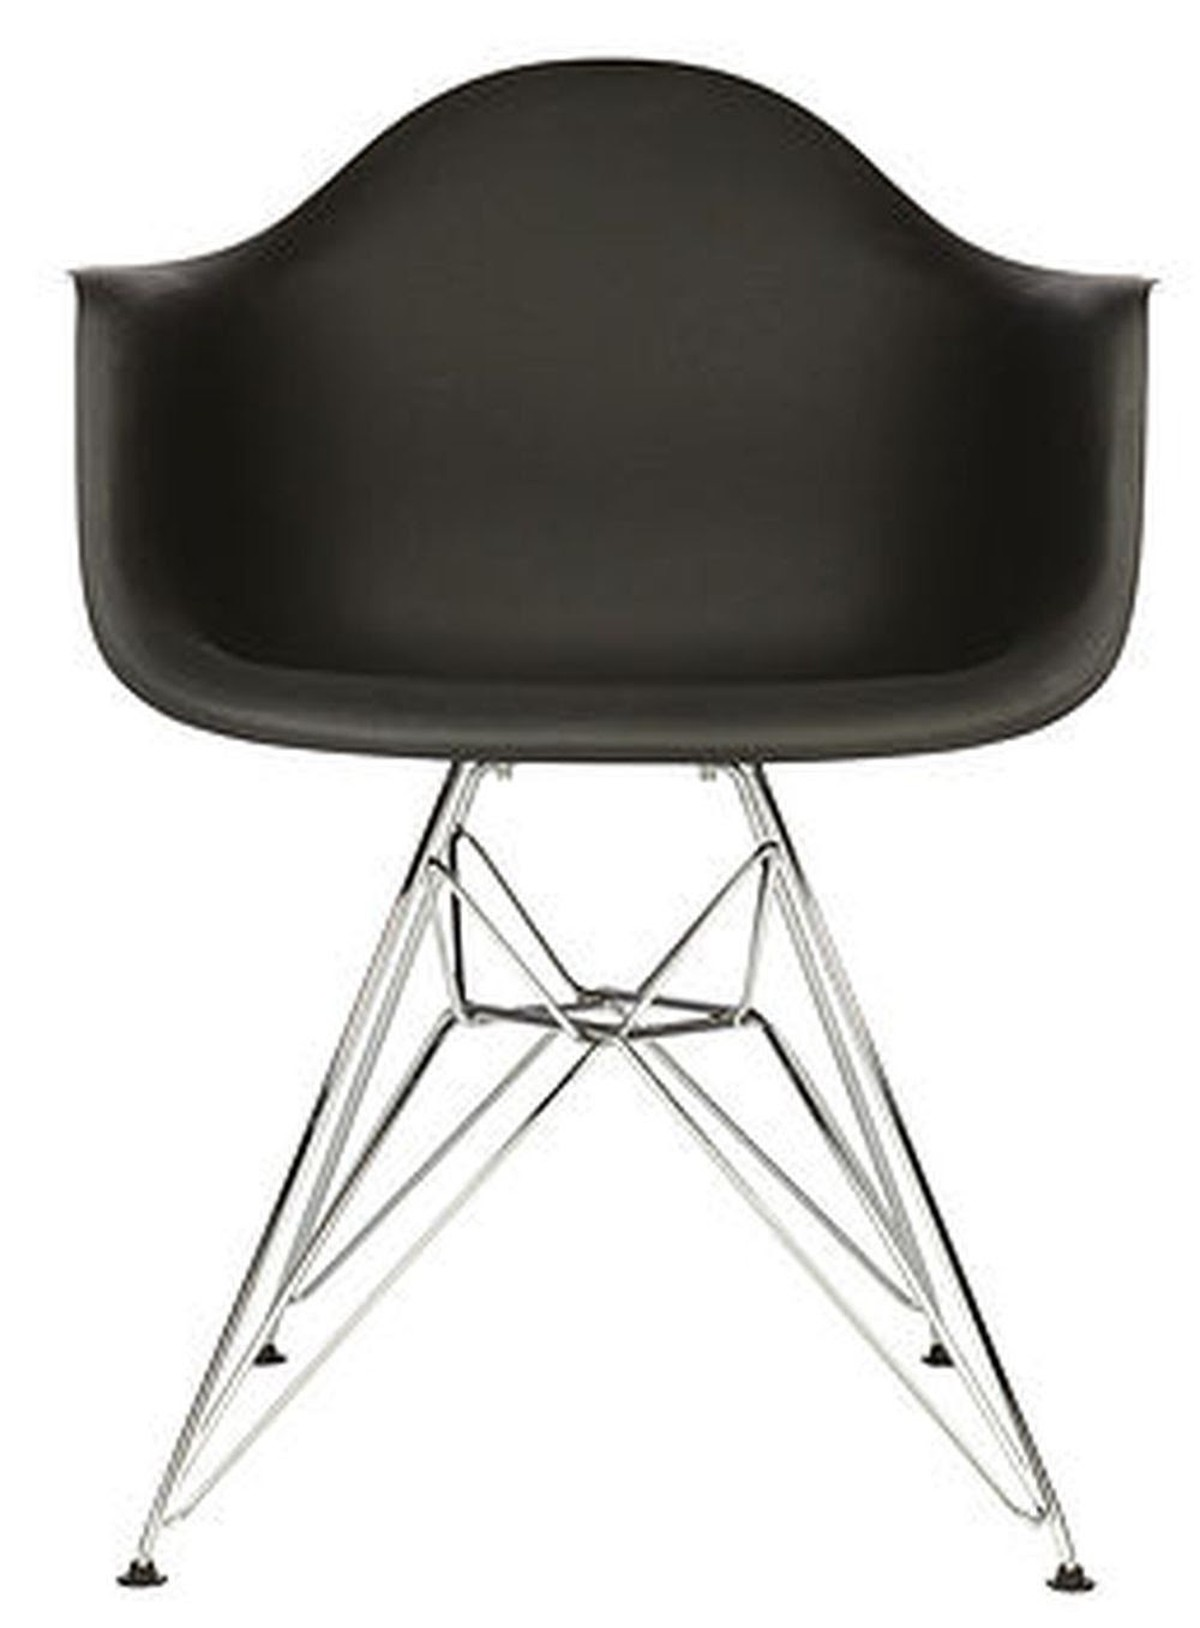 Black Eames Eiffel Chairs For Sale